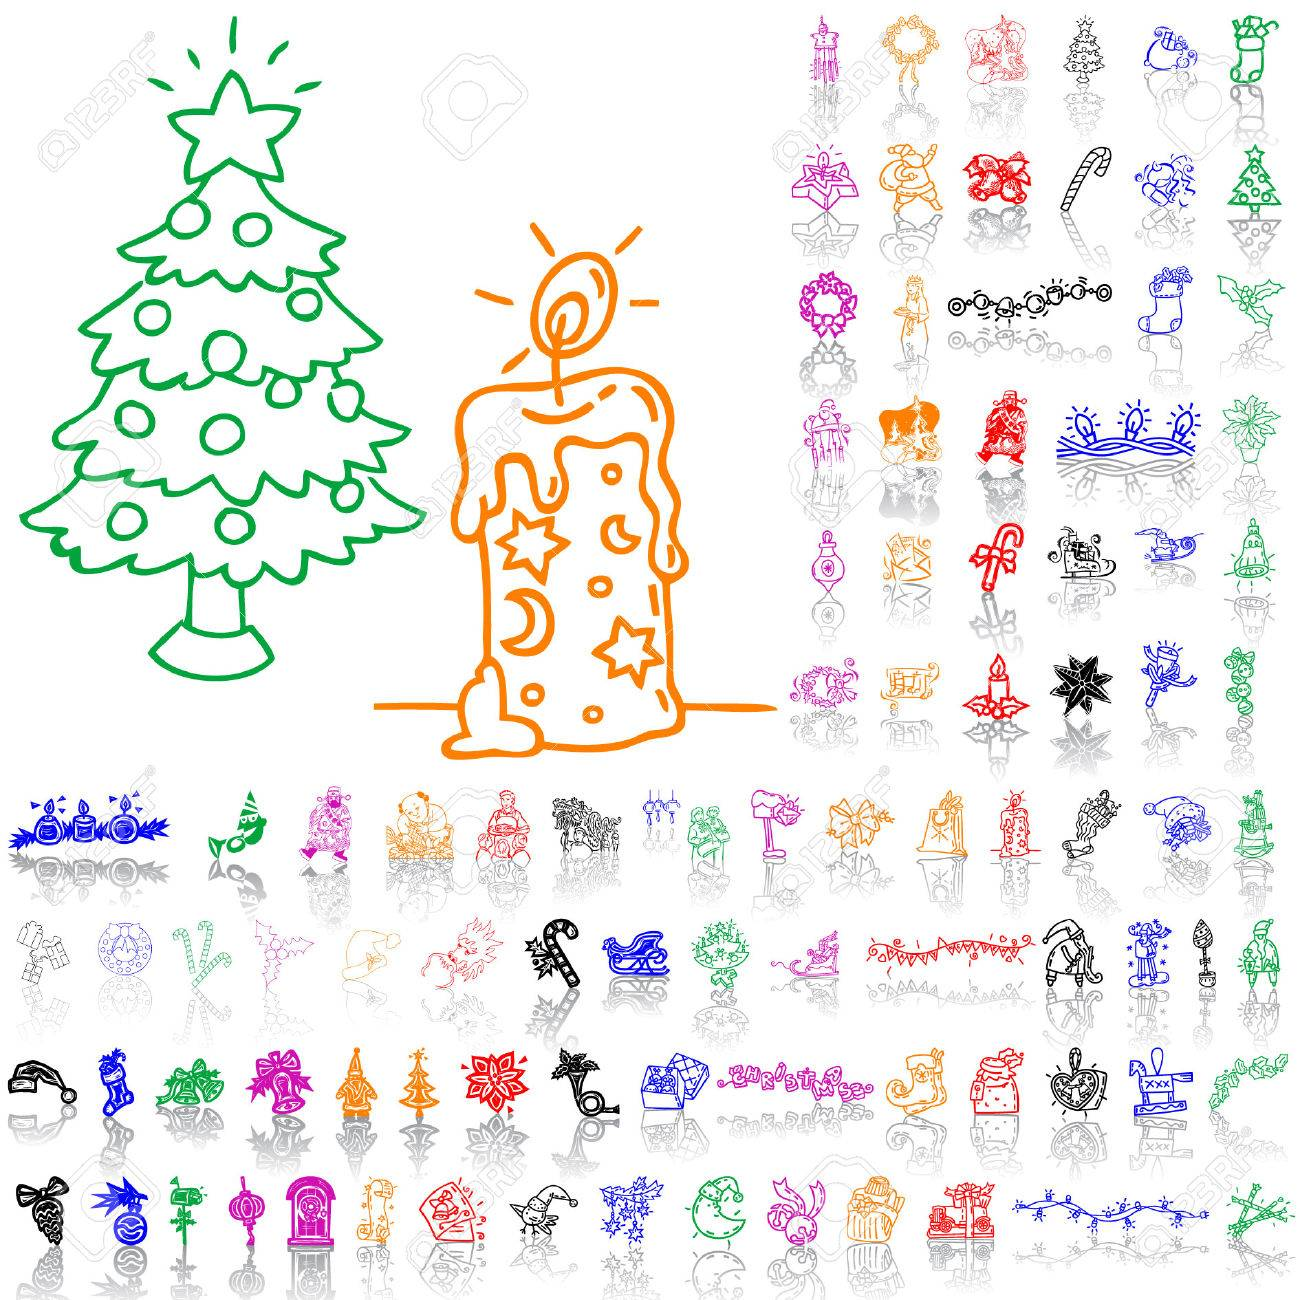 Set of Christmas sketches. Part 7. Isolated groups and layers. Global colors. Stock Vector - 5184465